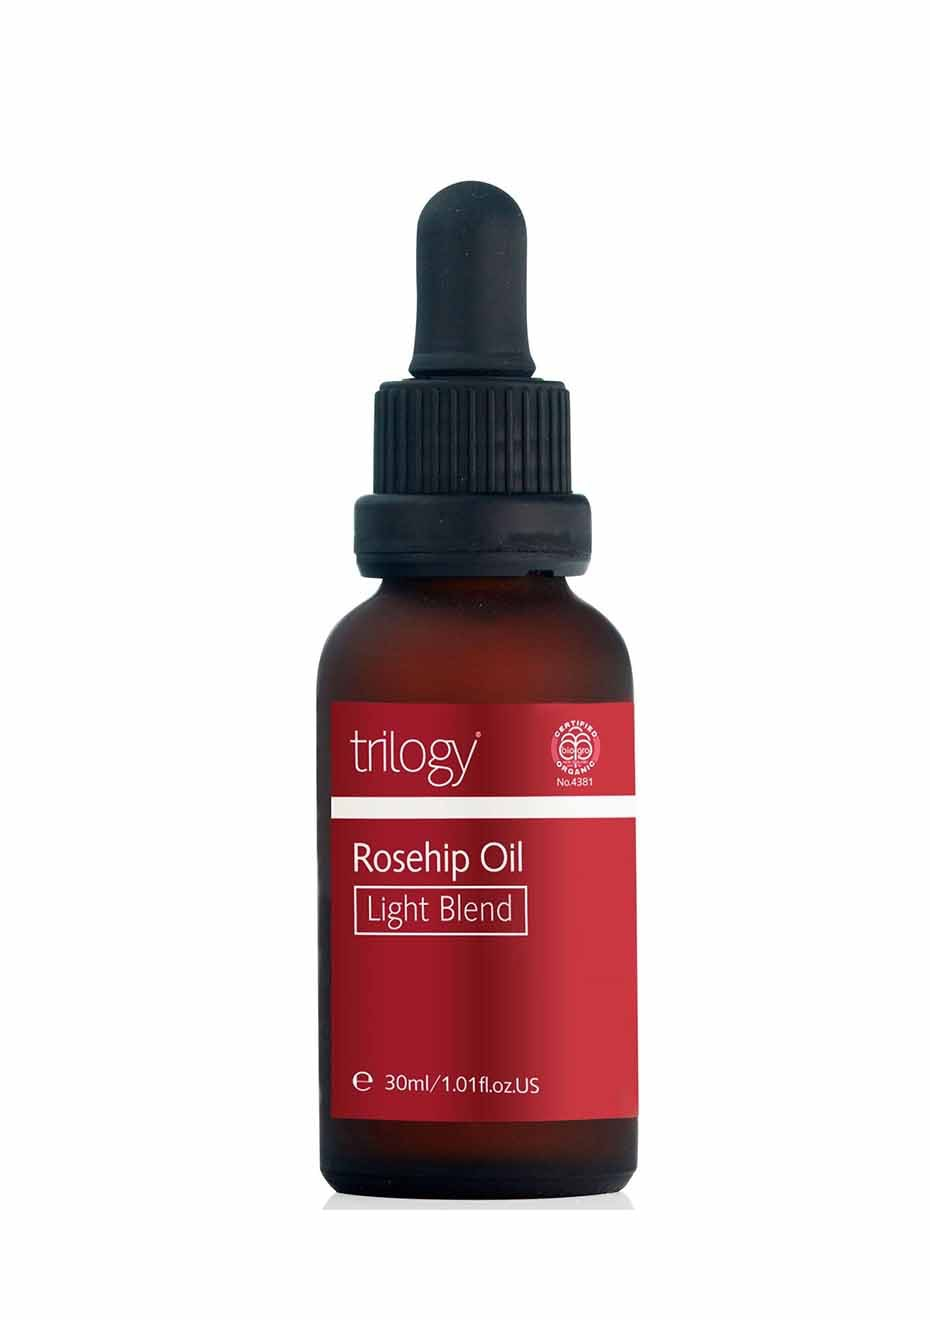 Trilogy - Rosehip Oil Light Blend (30ml)